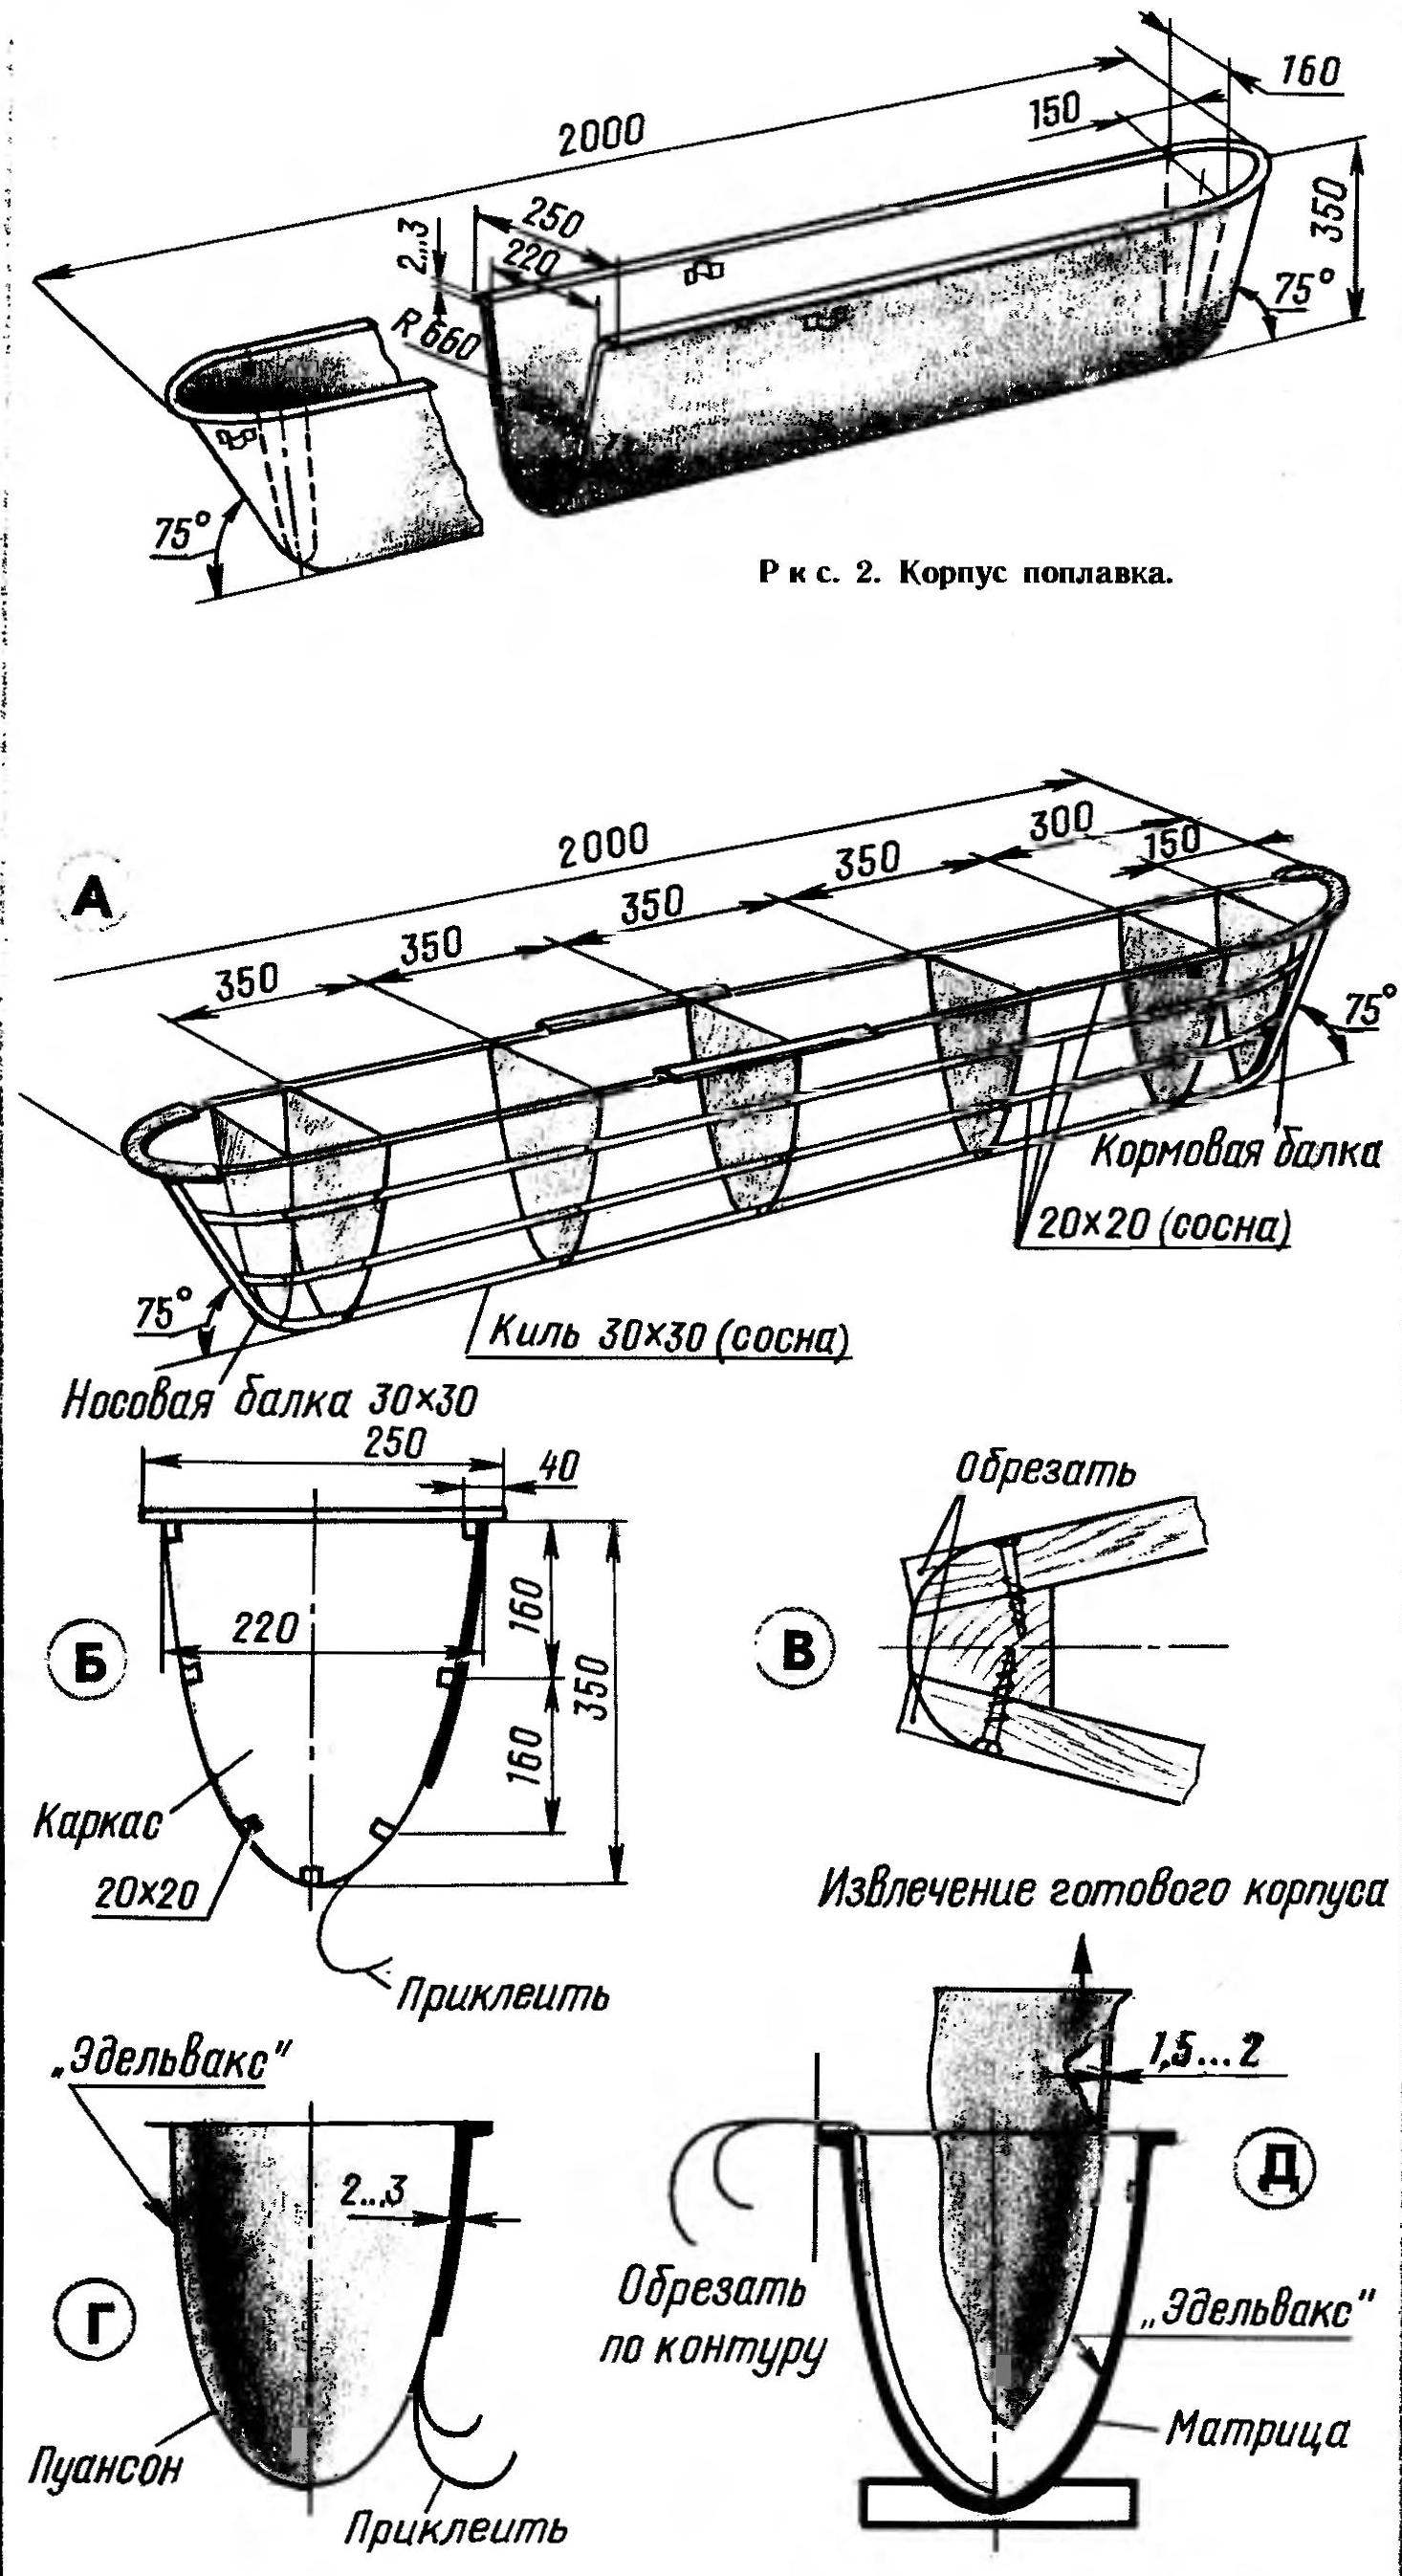 R and p. 3. The technology of manufacturing the housing of the float